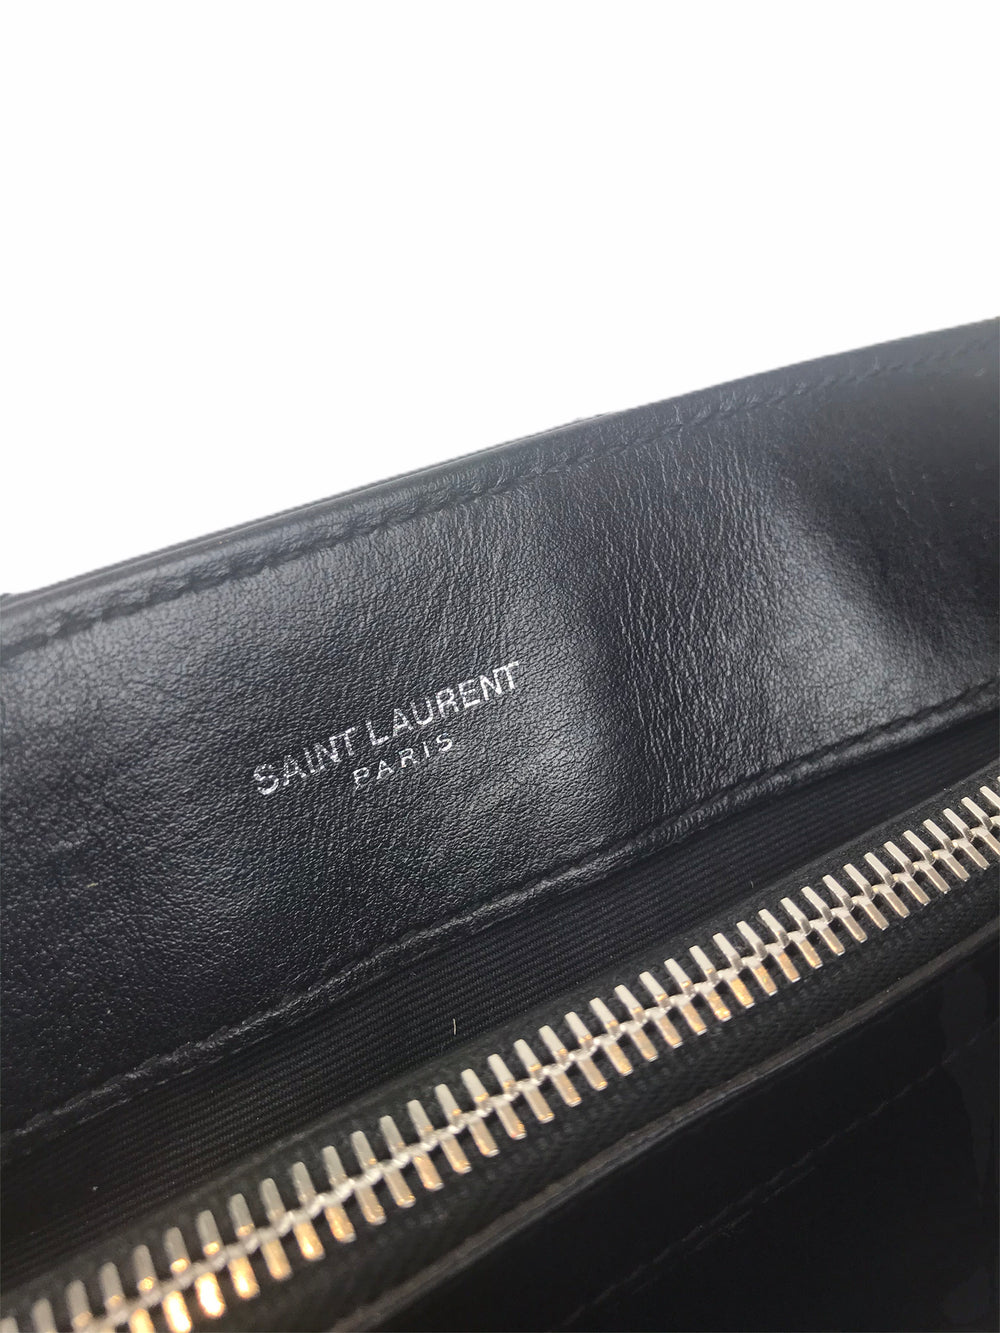 Saint Laurent Black Leather LouLou Shoulder Bag - As Seen on Instagram 23/08/2020